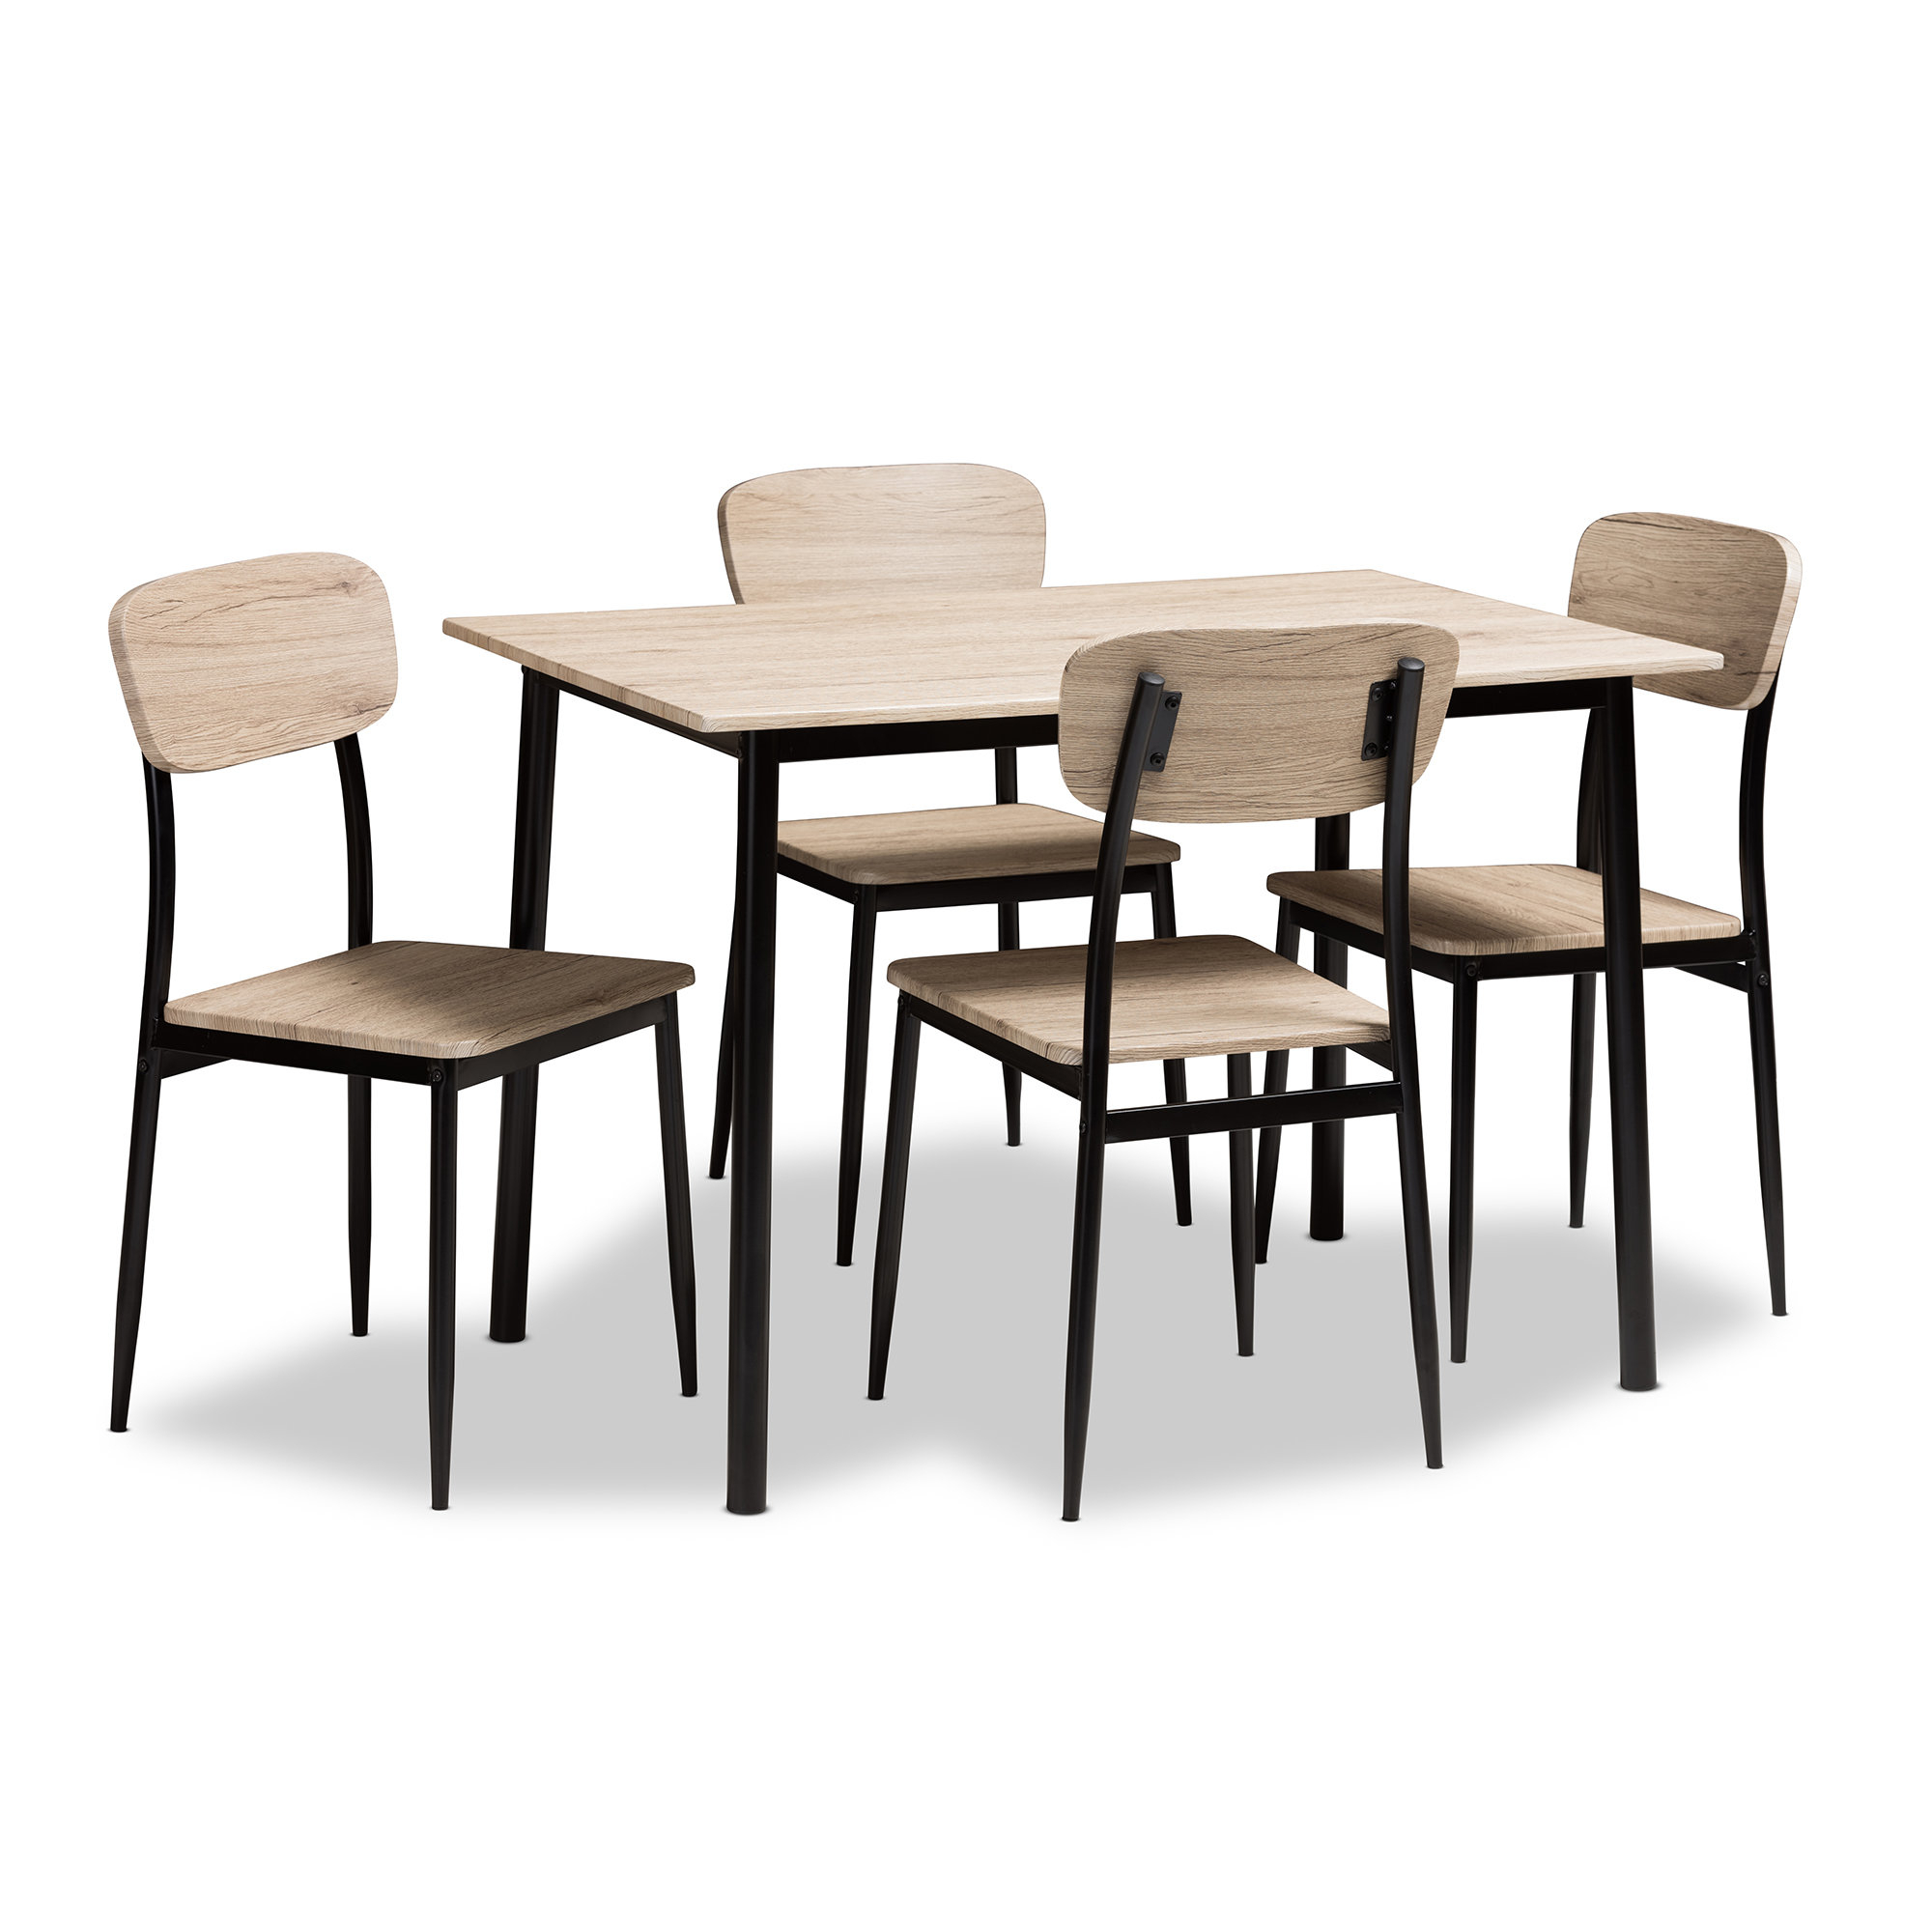 Well Liked Wiggs 5 Piece Dining Set In Tejeda 5 Piece Dining Sets (View 19 of 20)